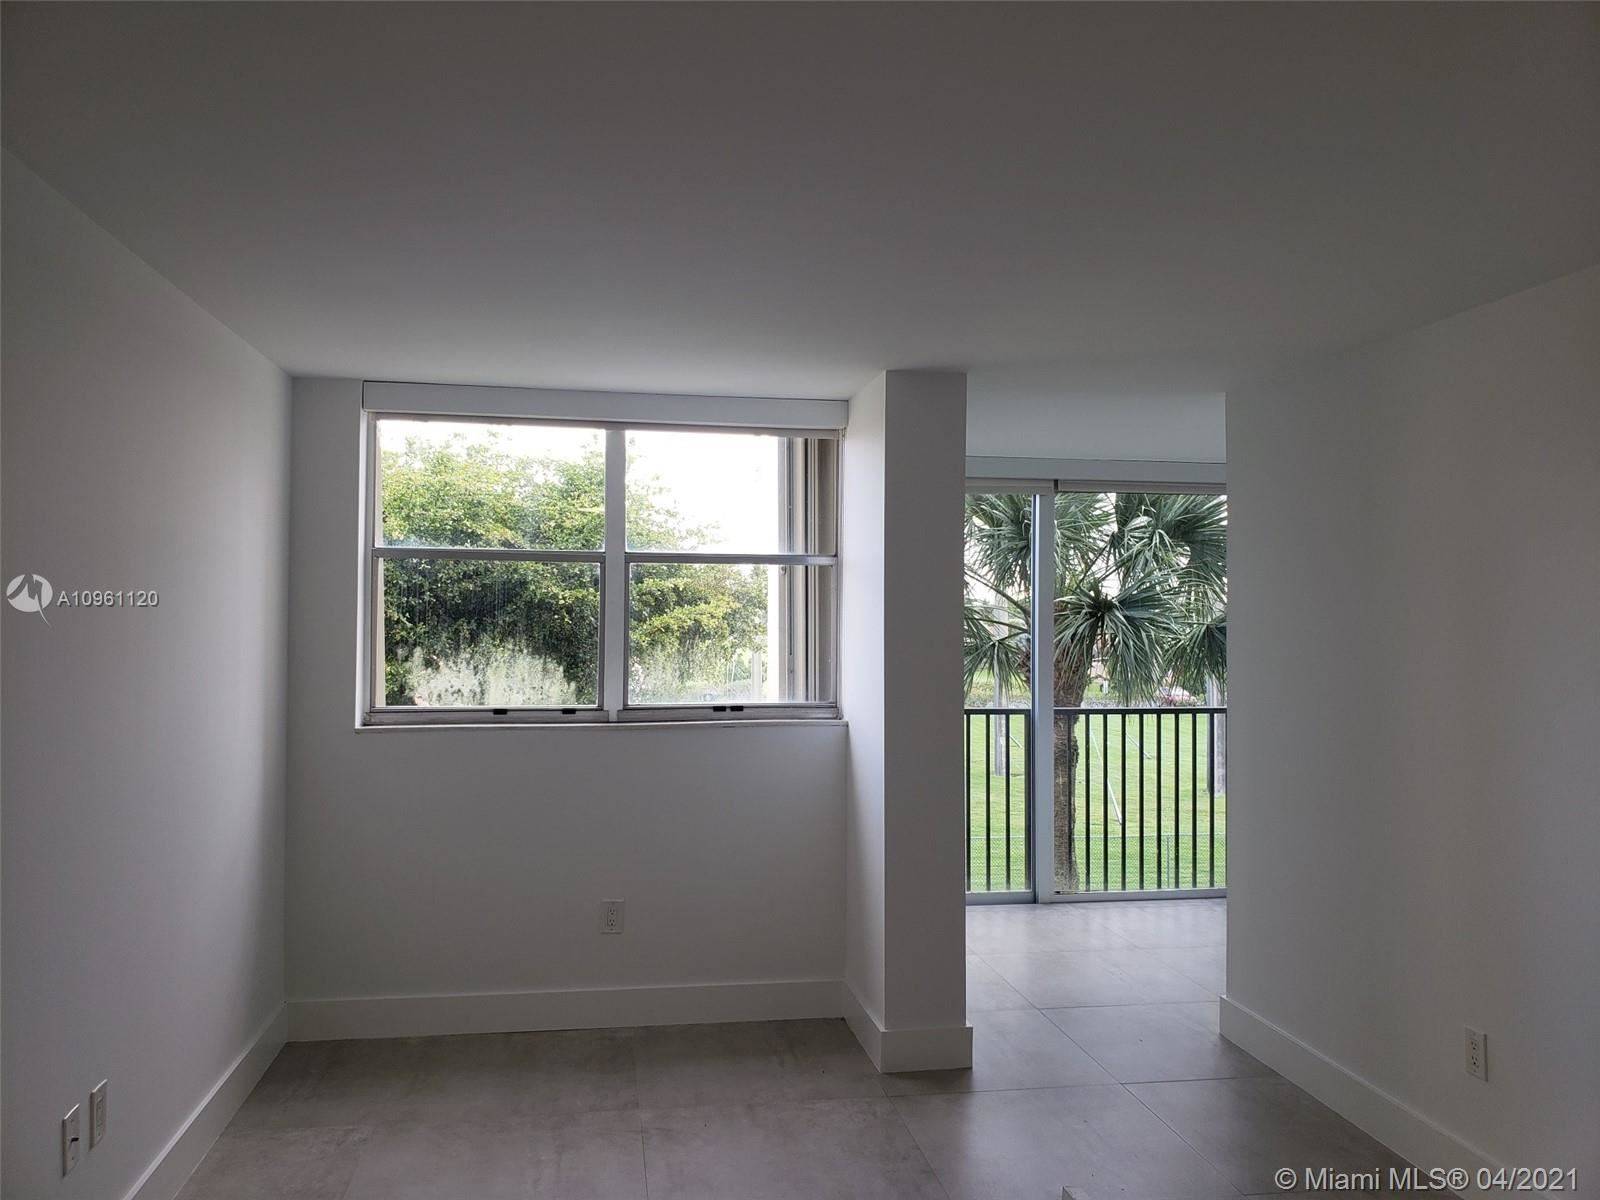 9401 SW 4th St must see #304, Miami, FL 33174 - #: A10961120